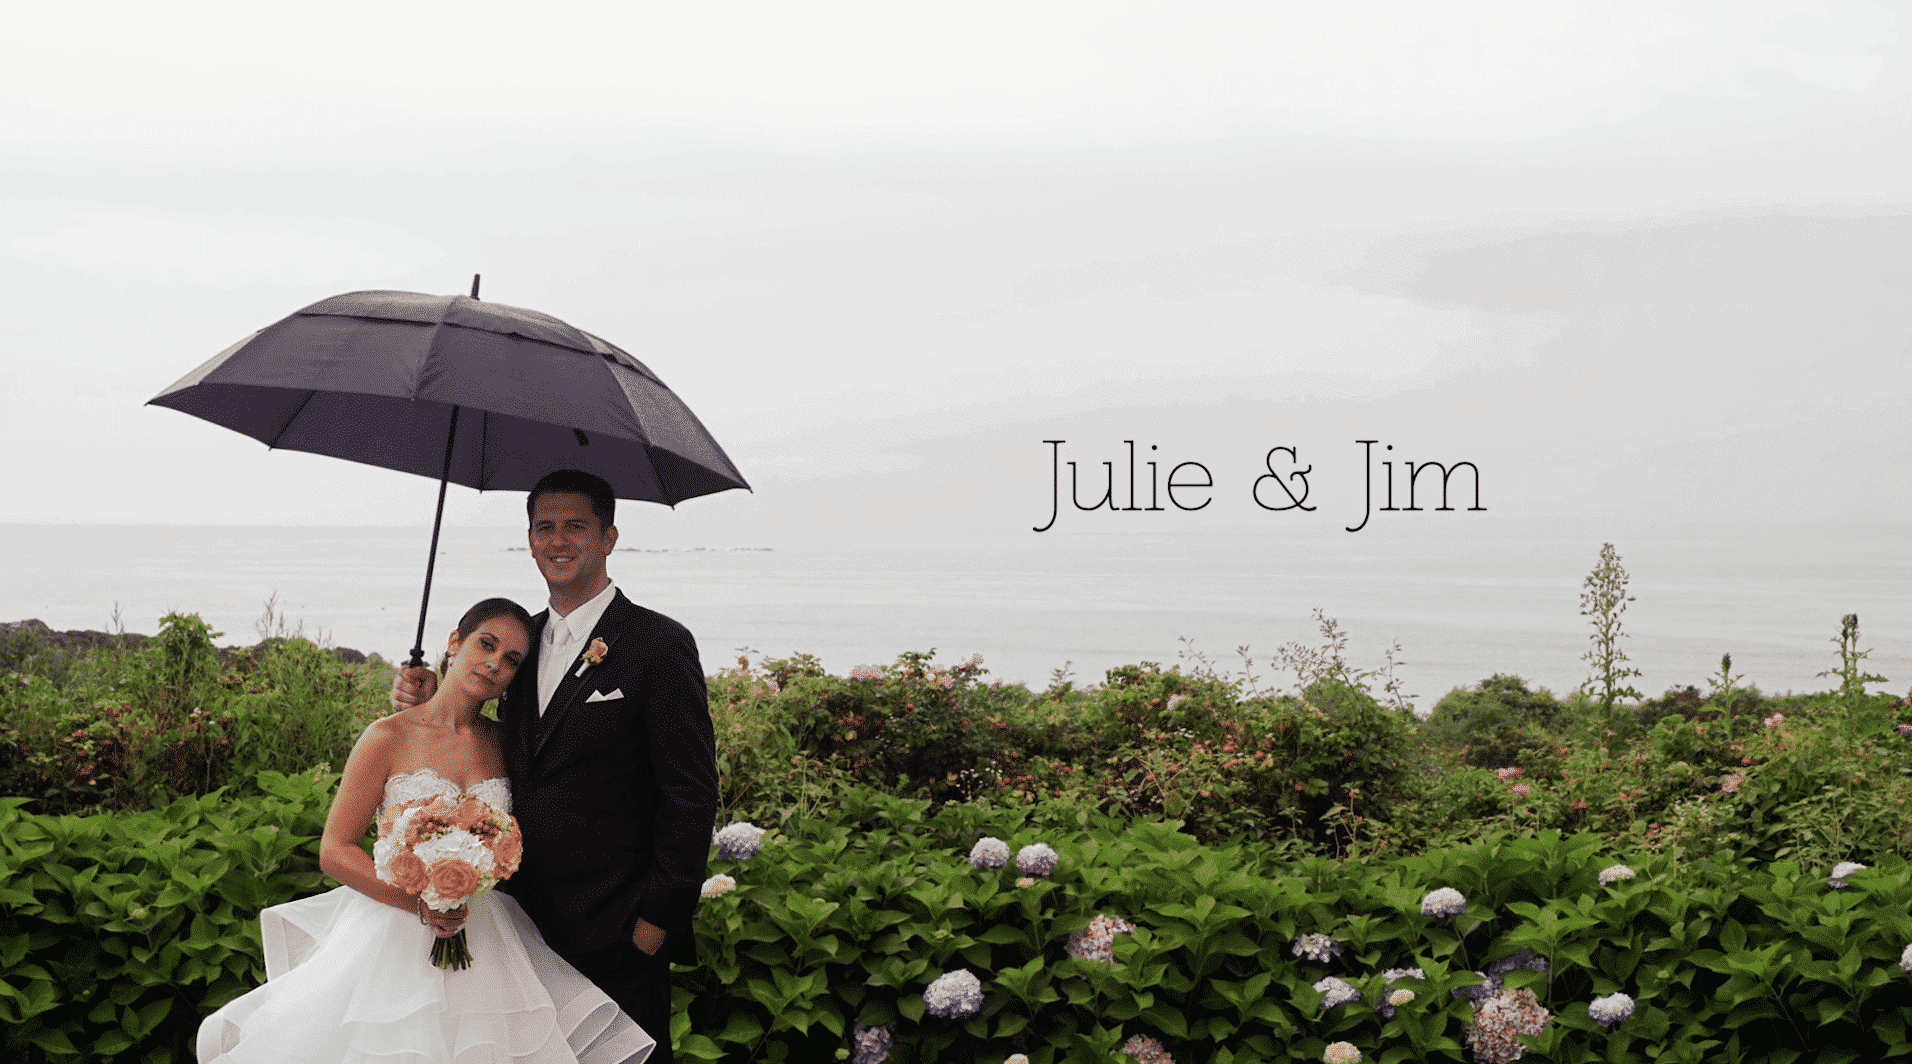 sp films, kennebunkport wedding, julie & jim